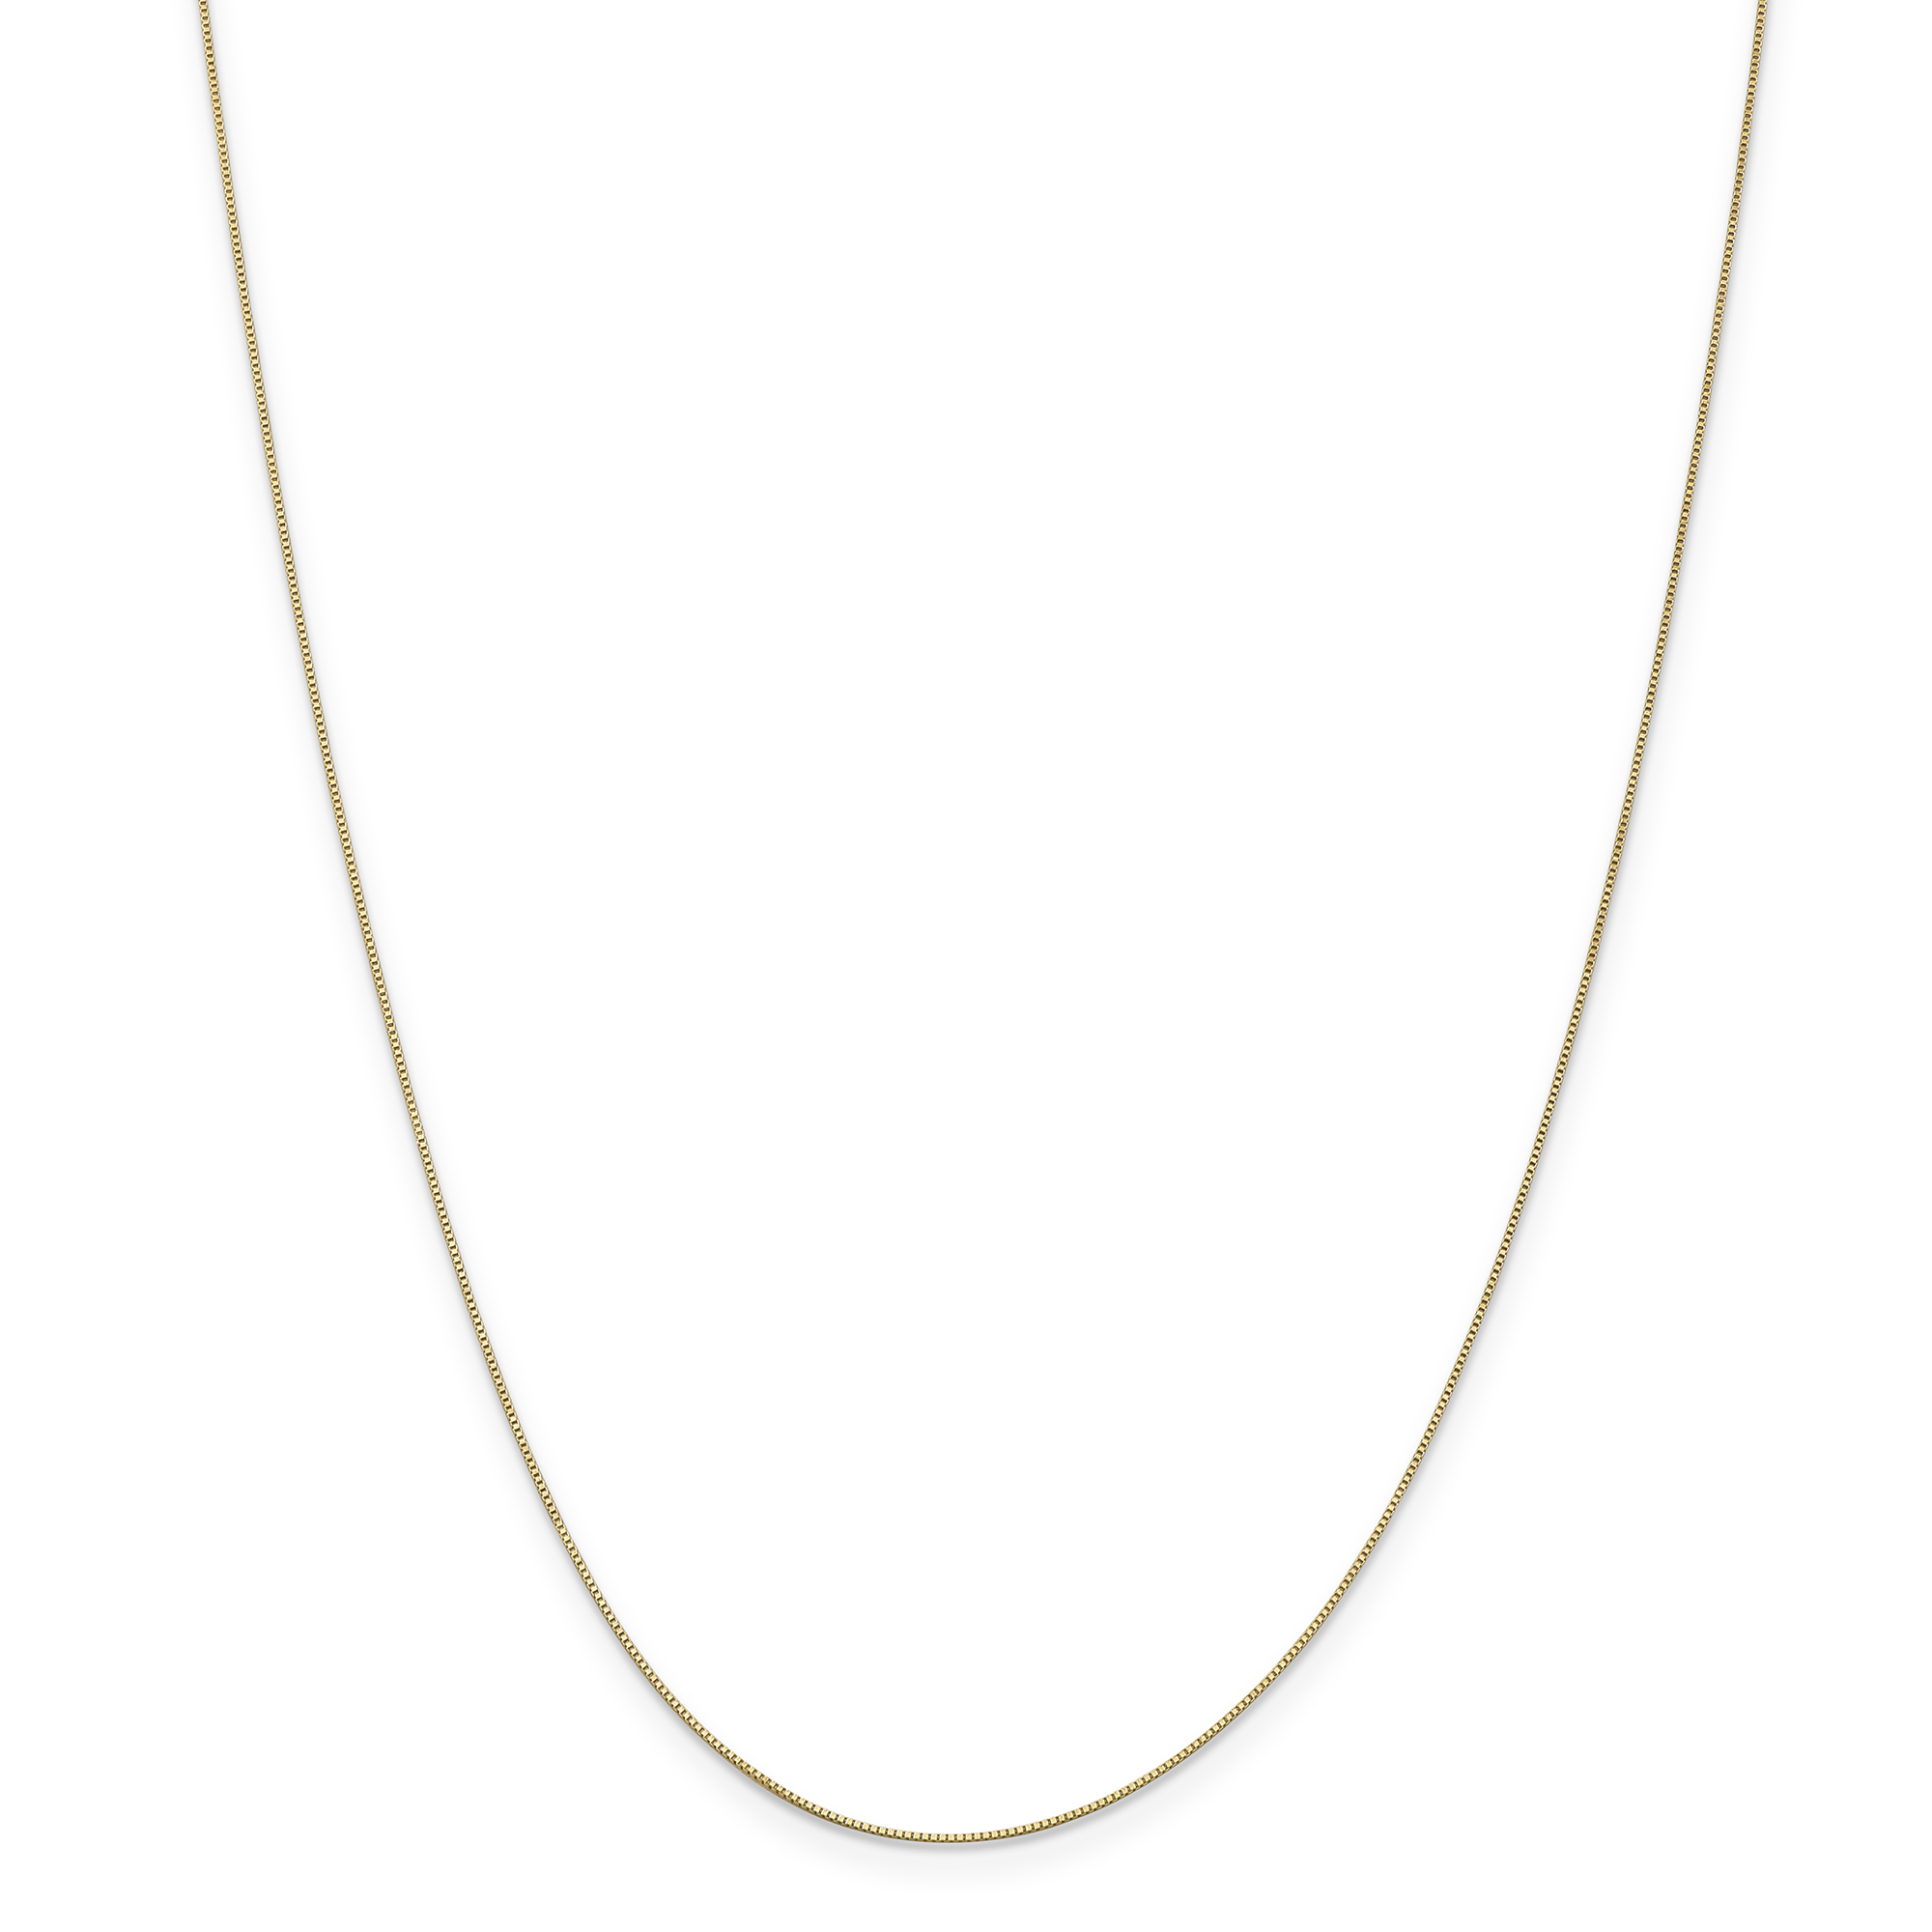 ALARRI 0.85 Carat 14K Solid Rose Gold Solitaire Citrine Necklace with 20 Inch Chain Length